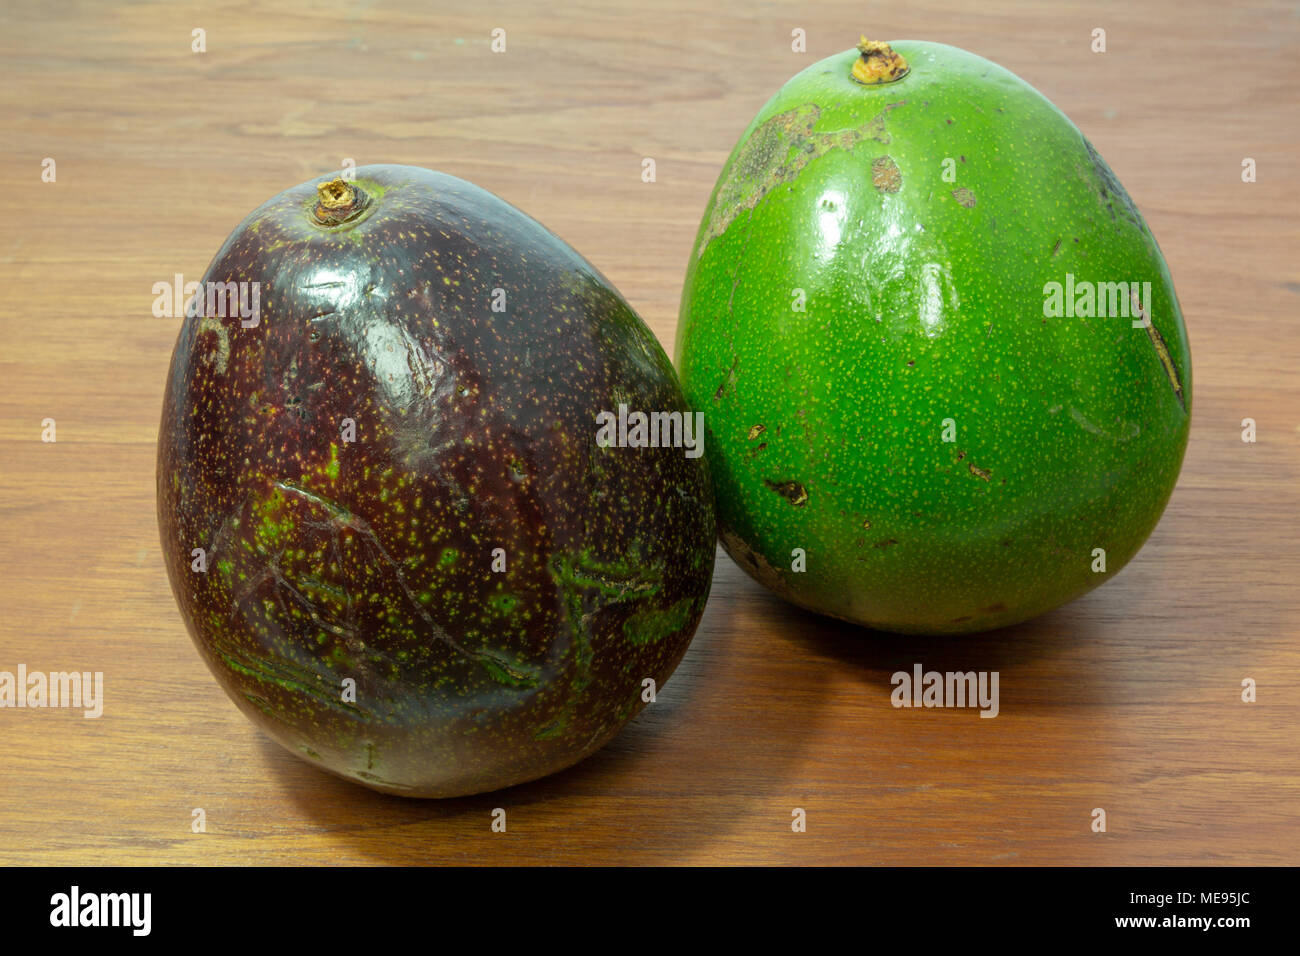 Ripe avocado, one black contrast other green which still ripening, whole and uncut, wooden background - Stock Image